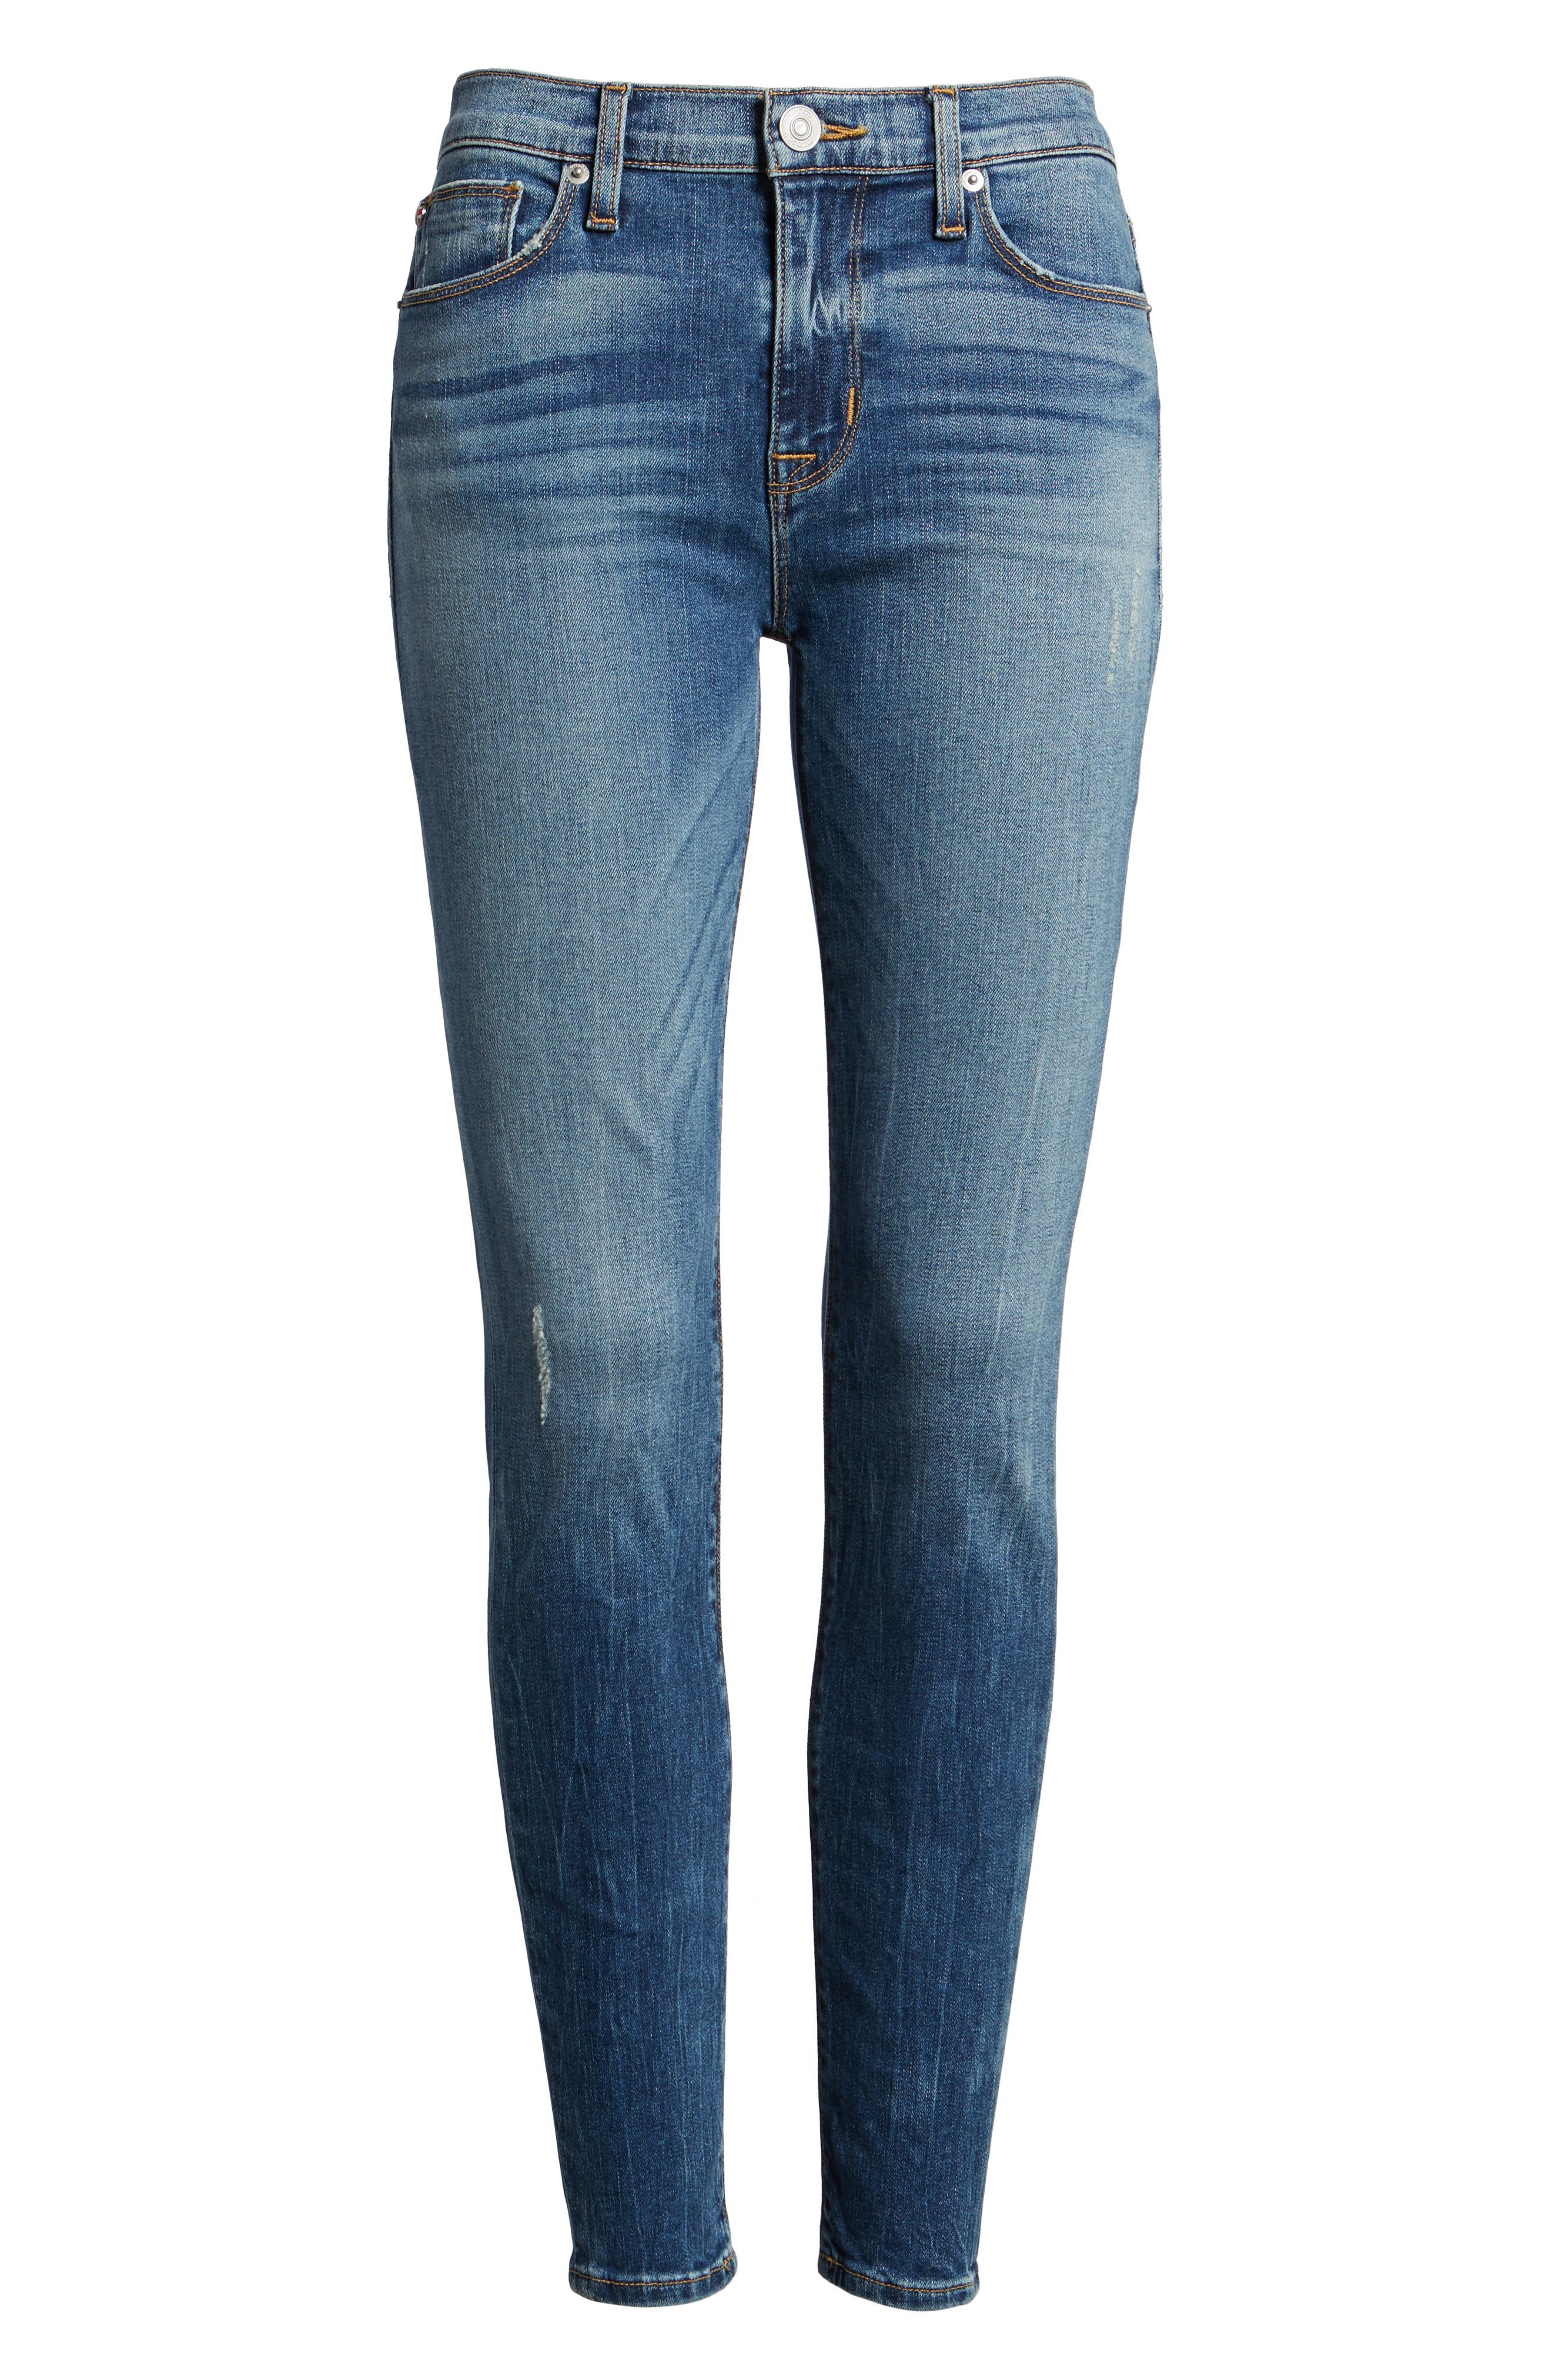 Nico Ankle Super Skinny Jeans,                             Main thumbnail 1, color,                             Lifeline